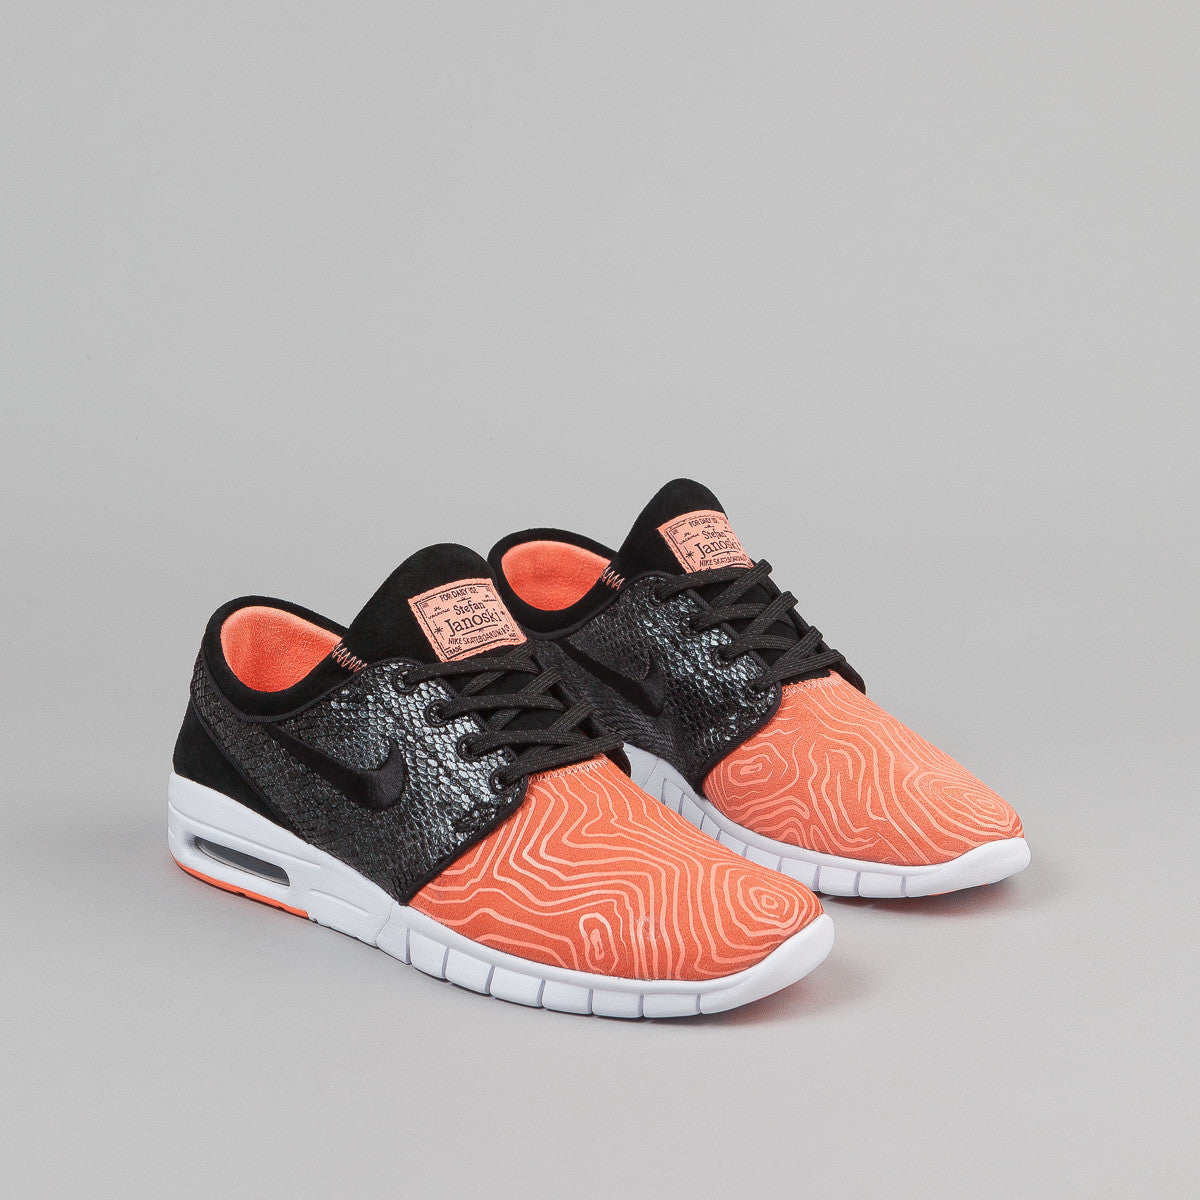 Nike SB Stefan Janoski Max Suede Shoes - Atomic Pink / Black / White